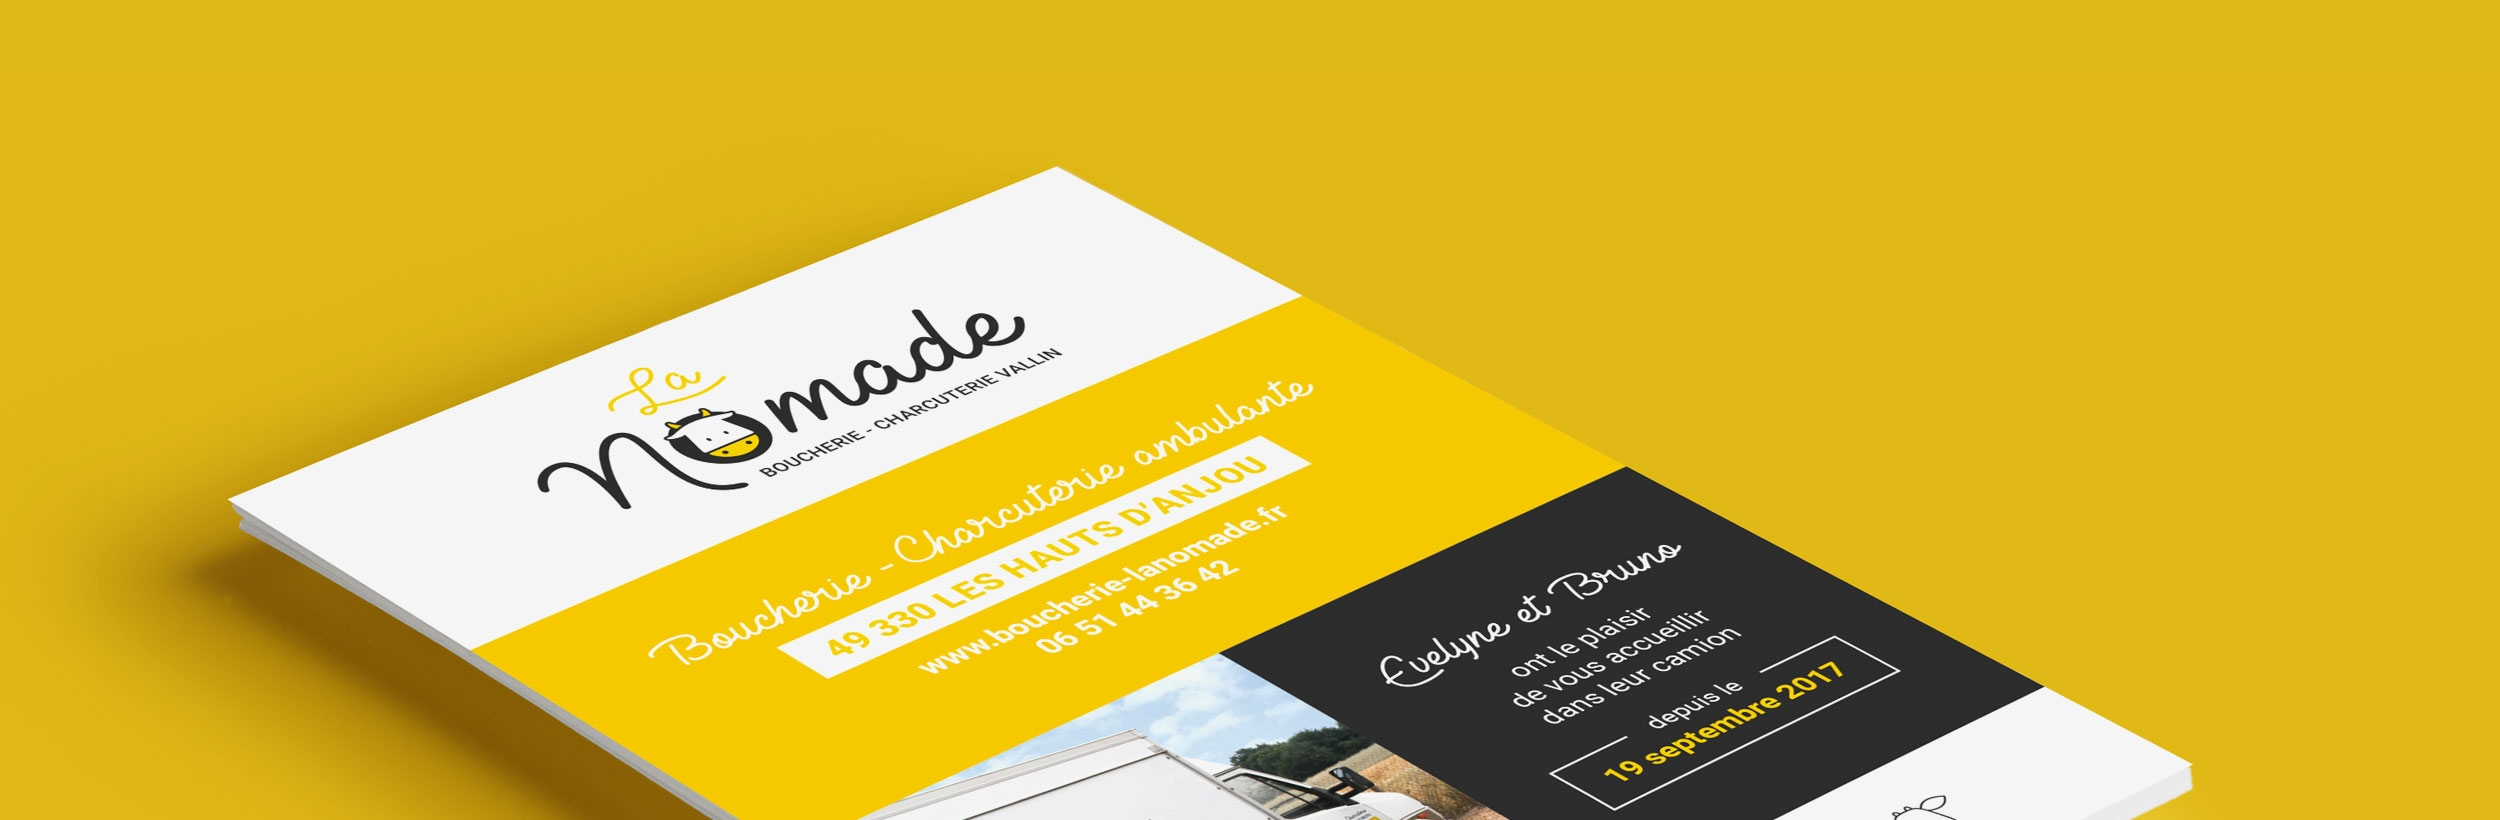 professionnels-print-supports-com-flyer-lanomade-pagetop